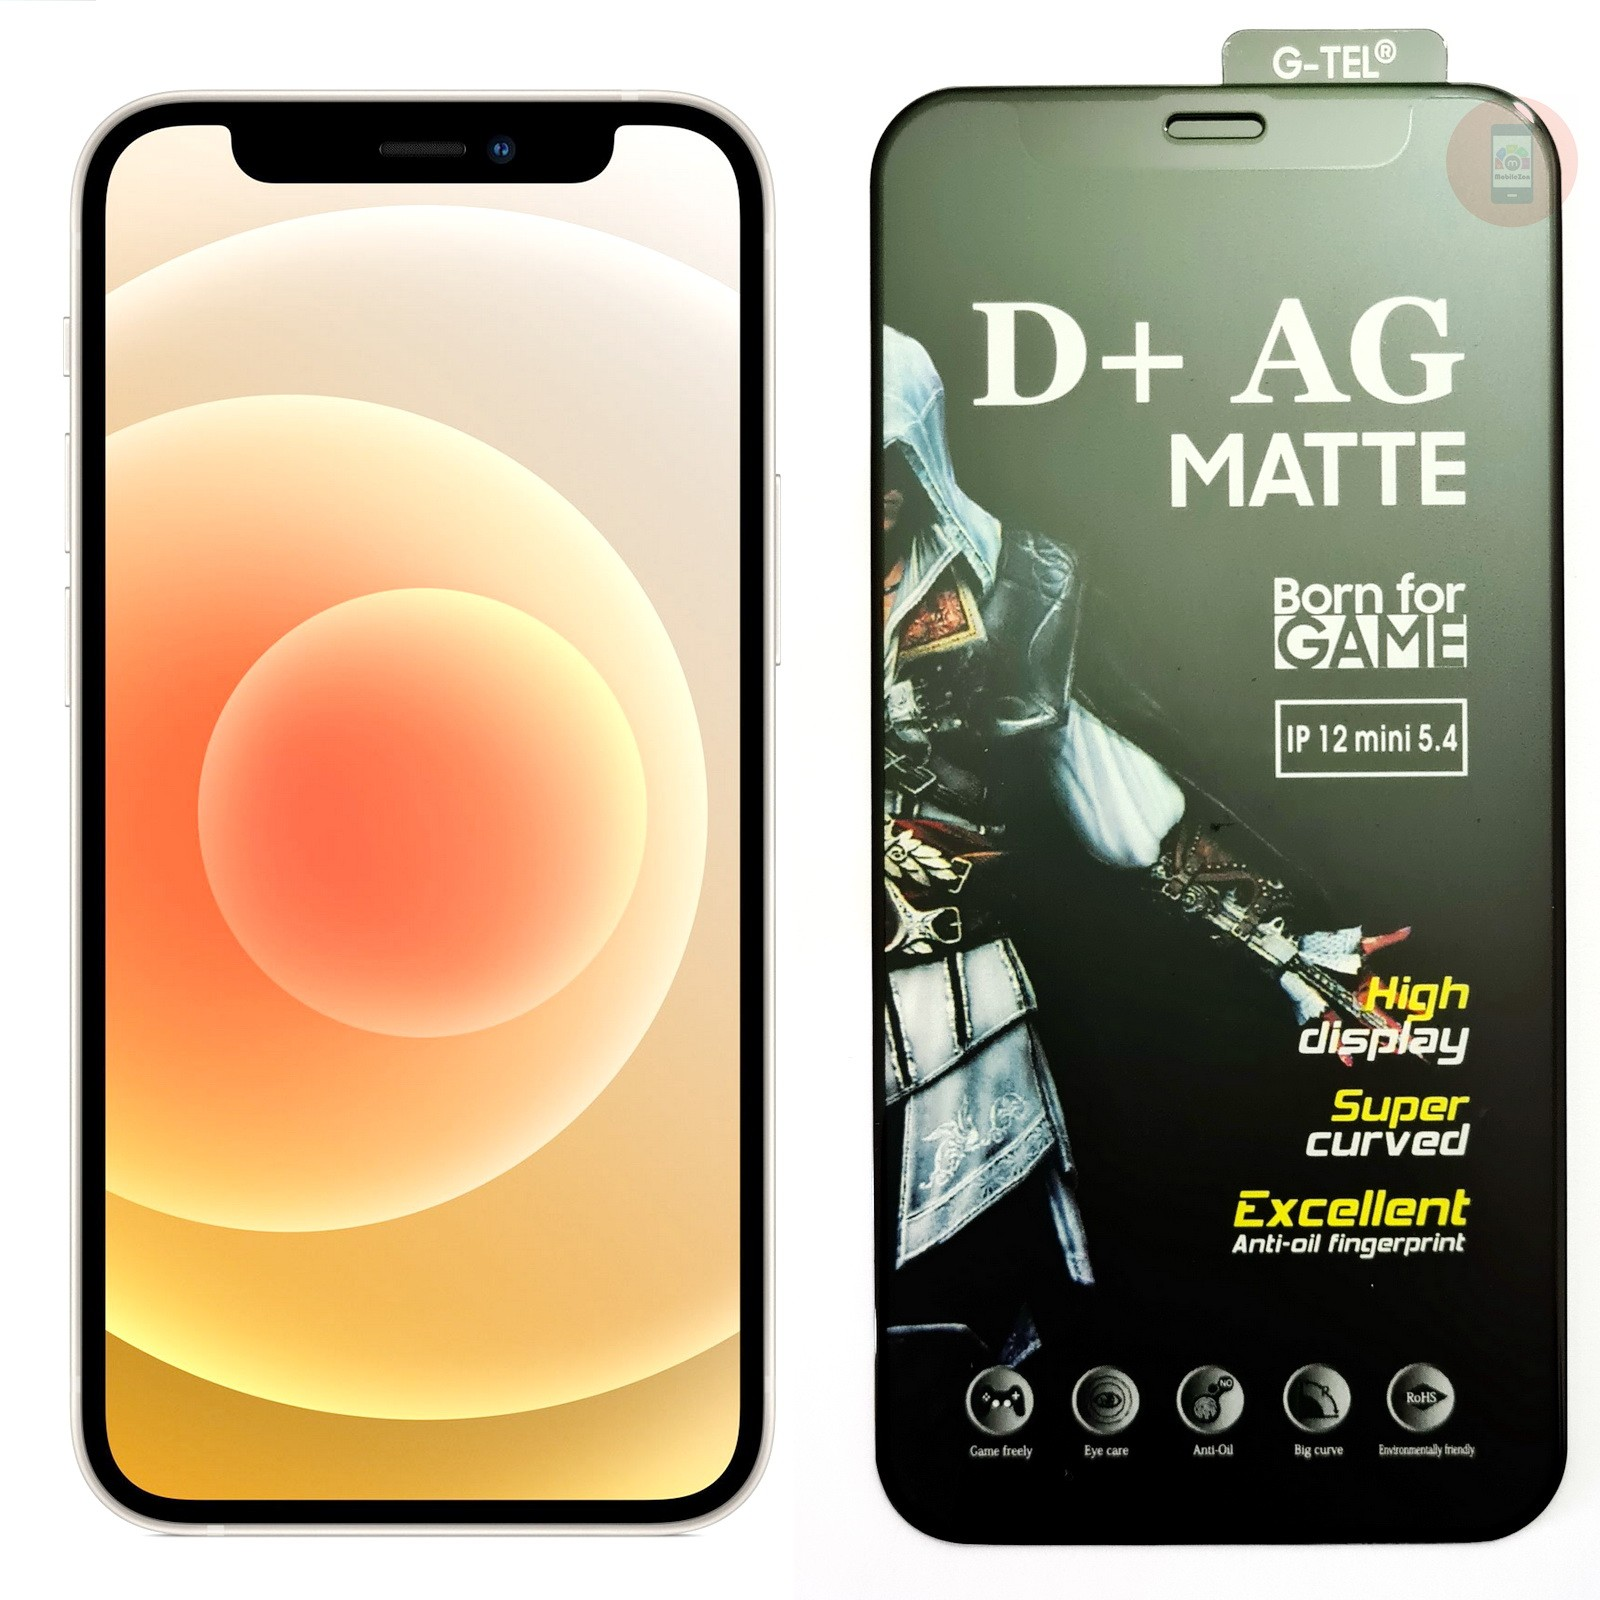 iPhone 12 Mini D+ AG Matte Tempered Glass Screen Protector